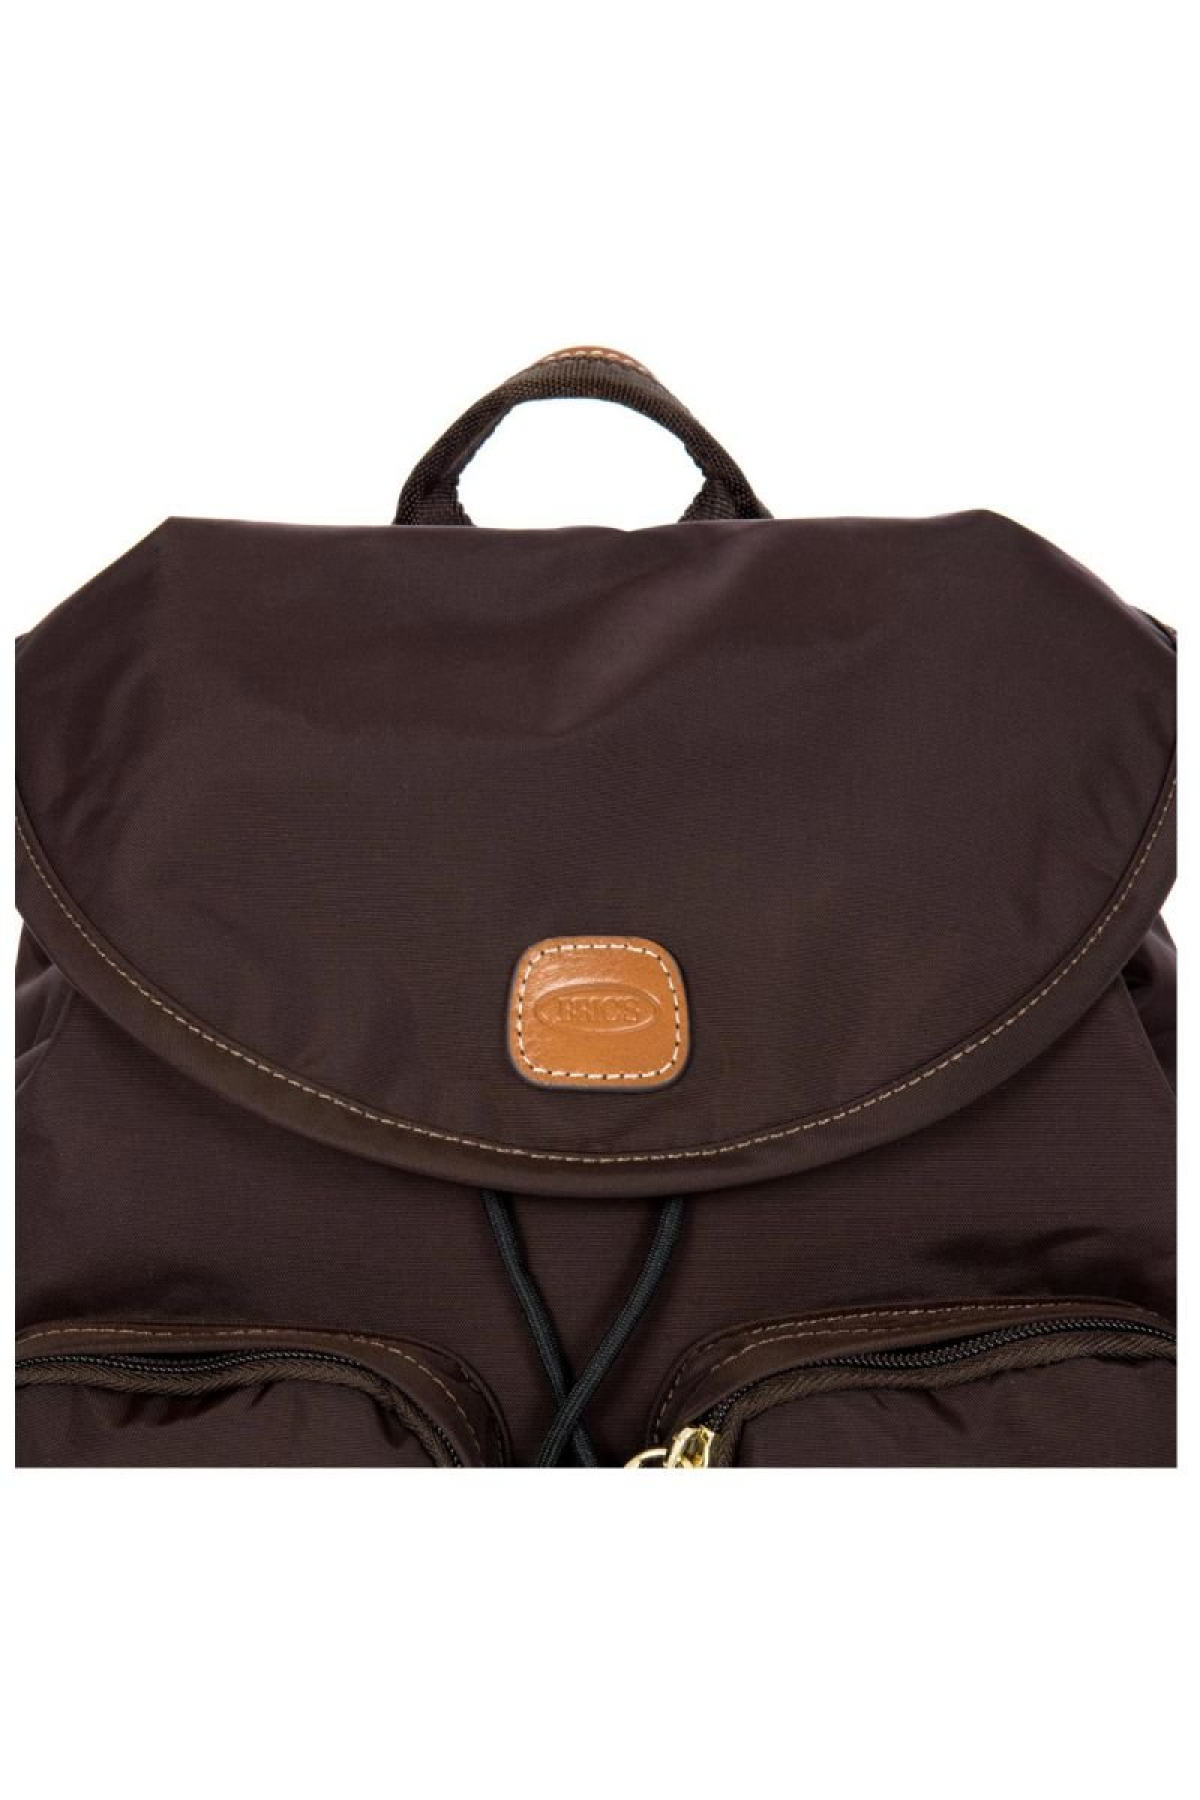 3754 Bric's X-Travel Backpack 27x27x13 cm Brown